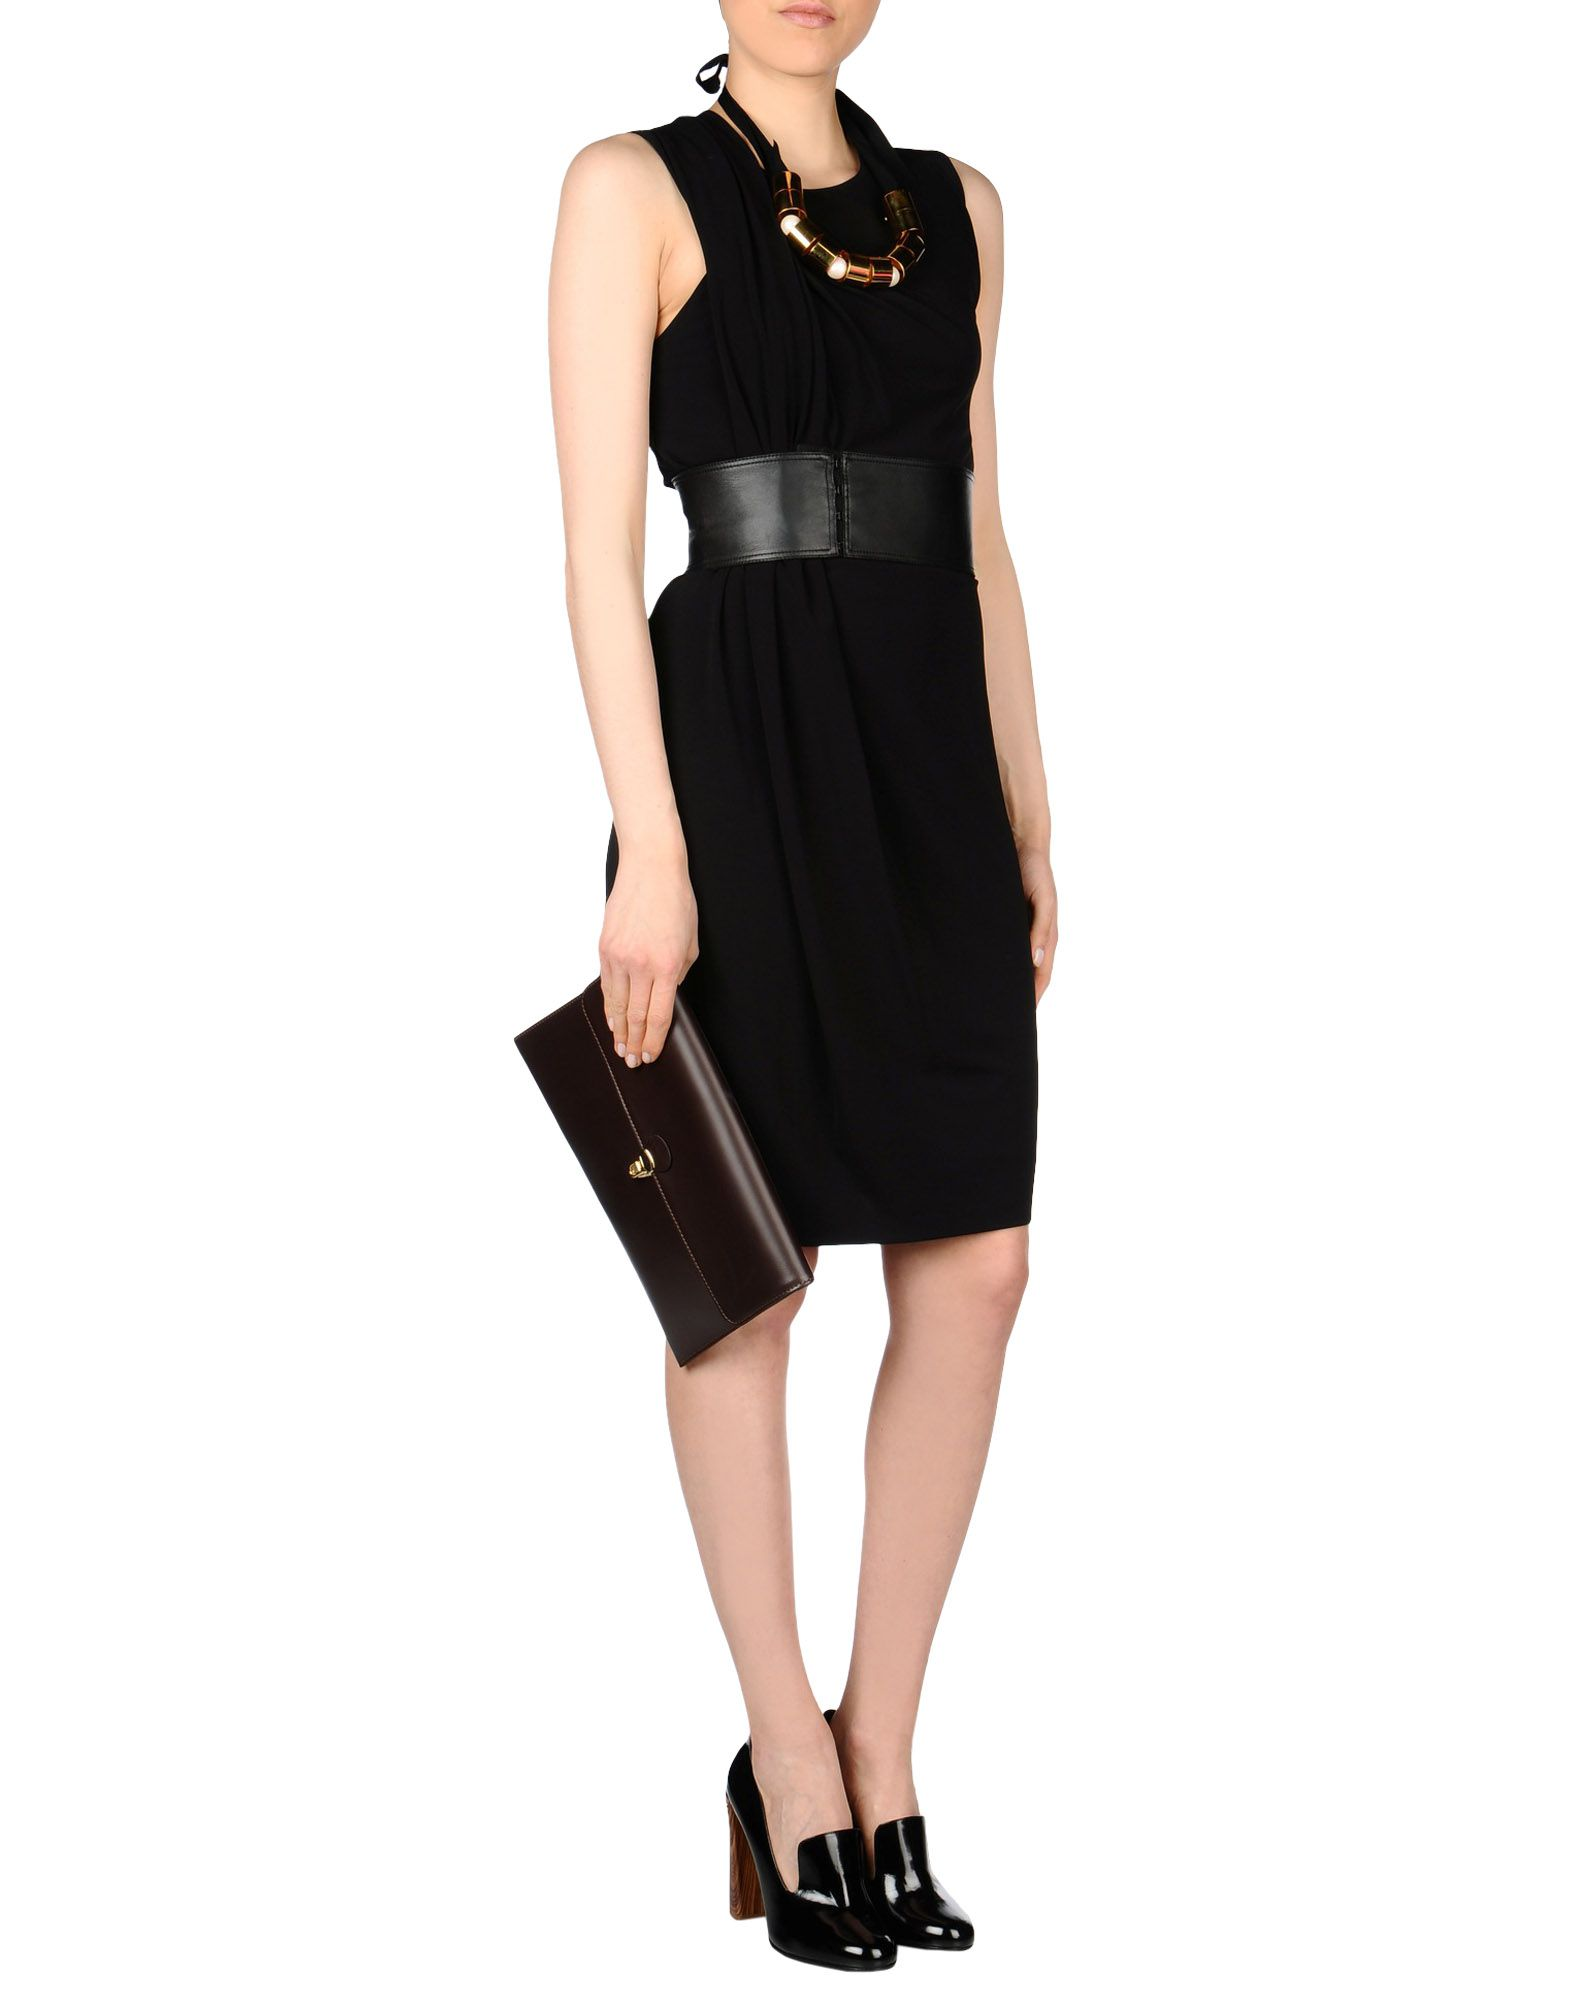 Alexander wang black dress